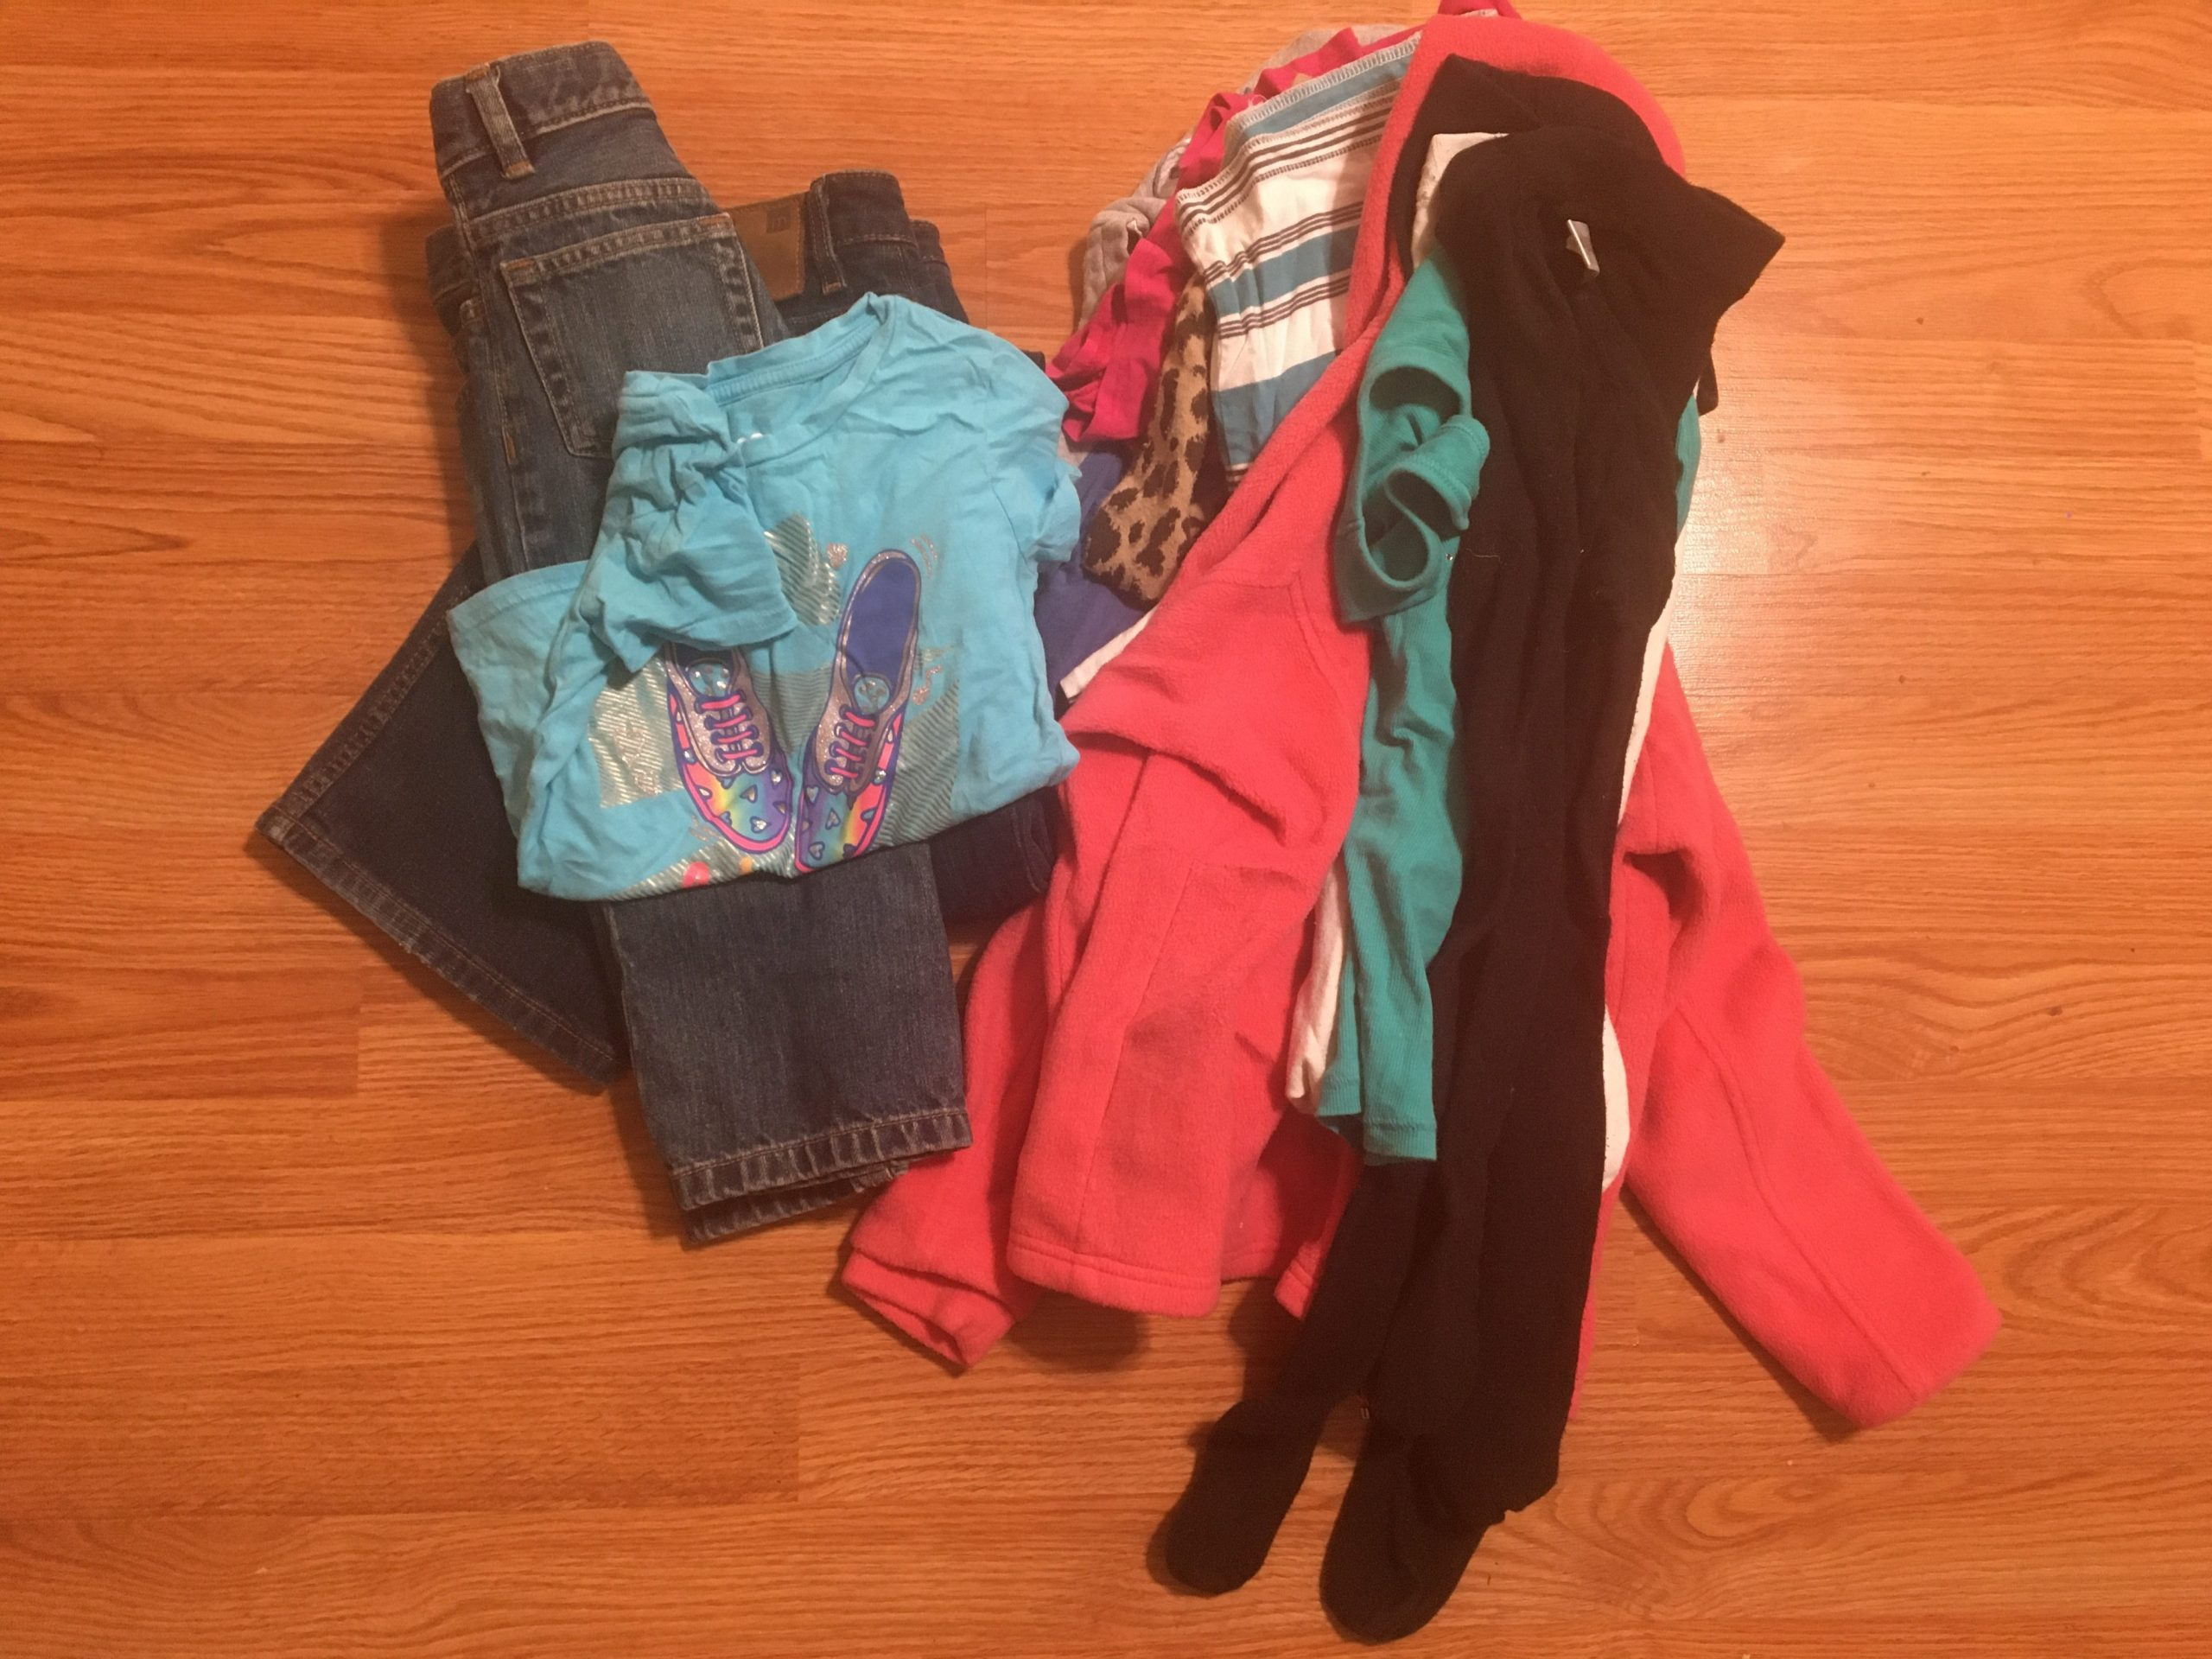 11+ clothing items in piles